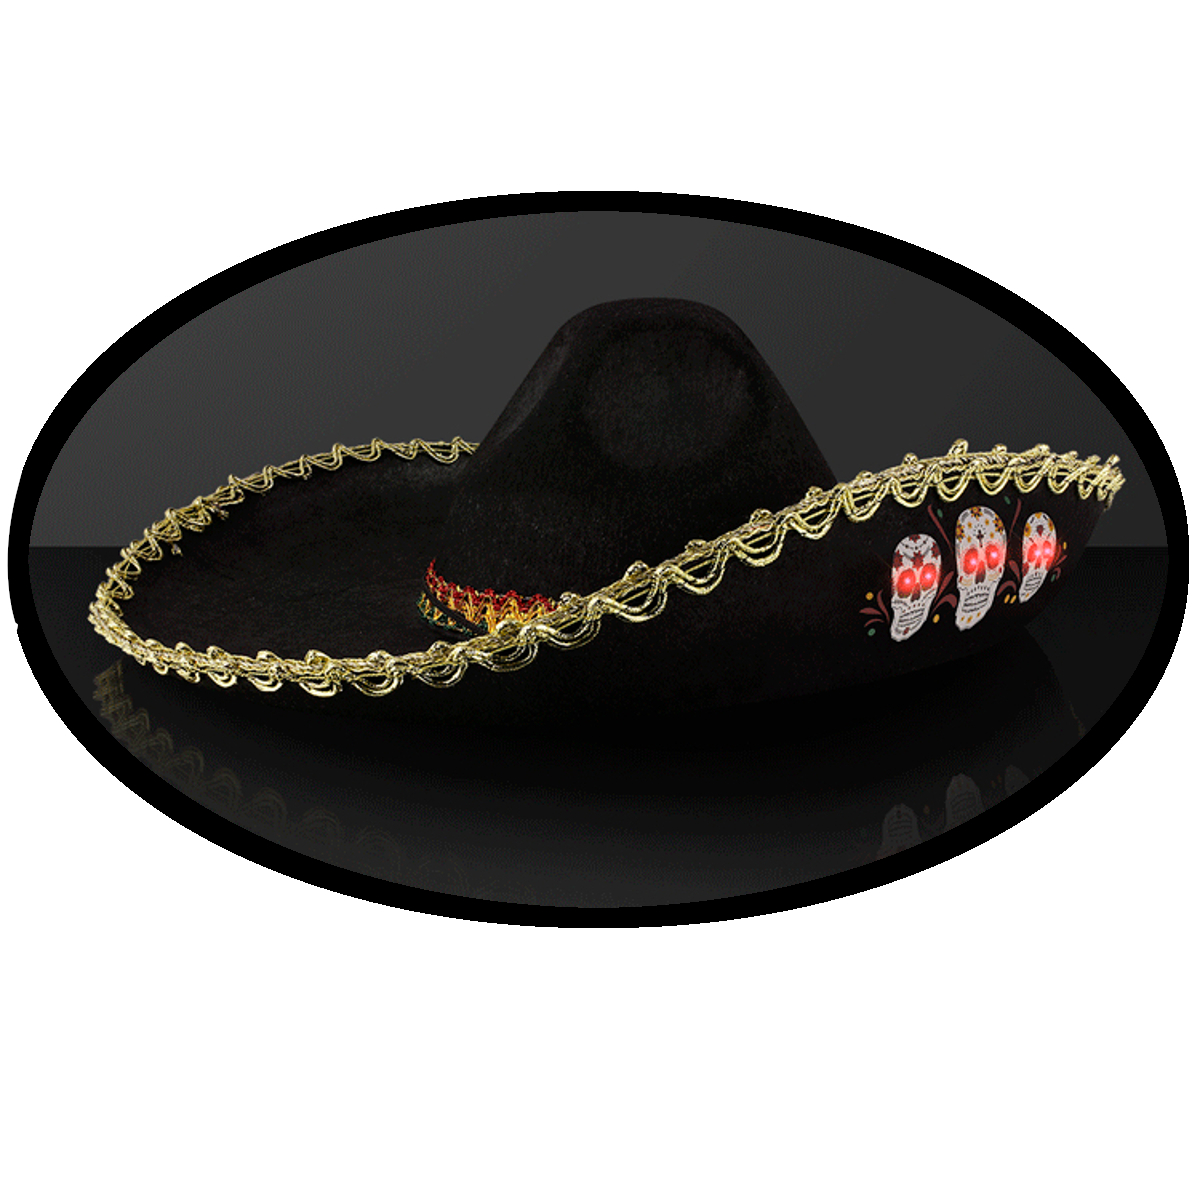 Wholesale Costume Now Available At Central Items 1 40 Ifrogz Little Rockers Headphones Lion Black Light Up Oversize Sombrero Skull Hat With Gold Brim